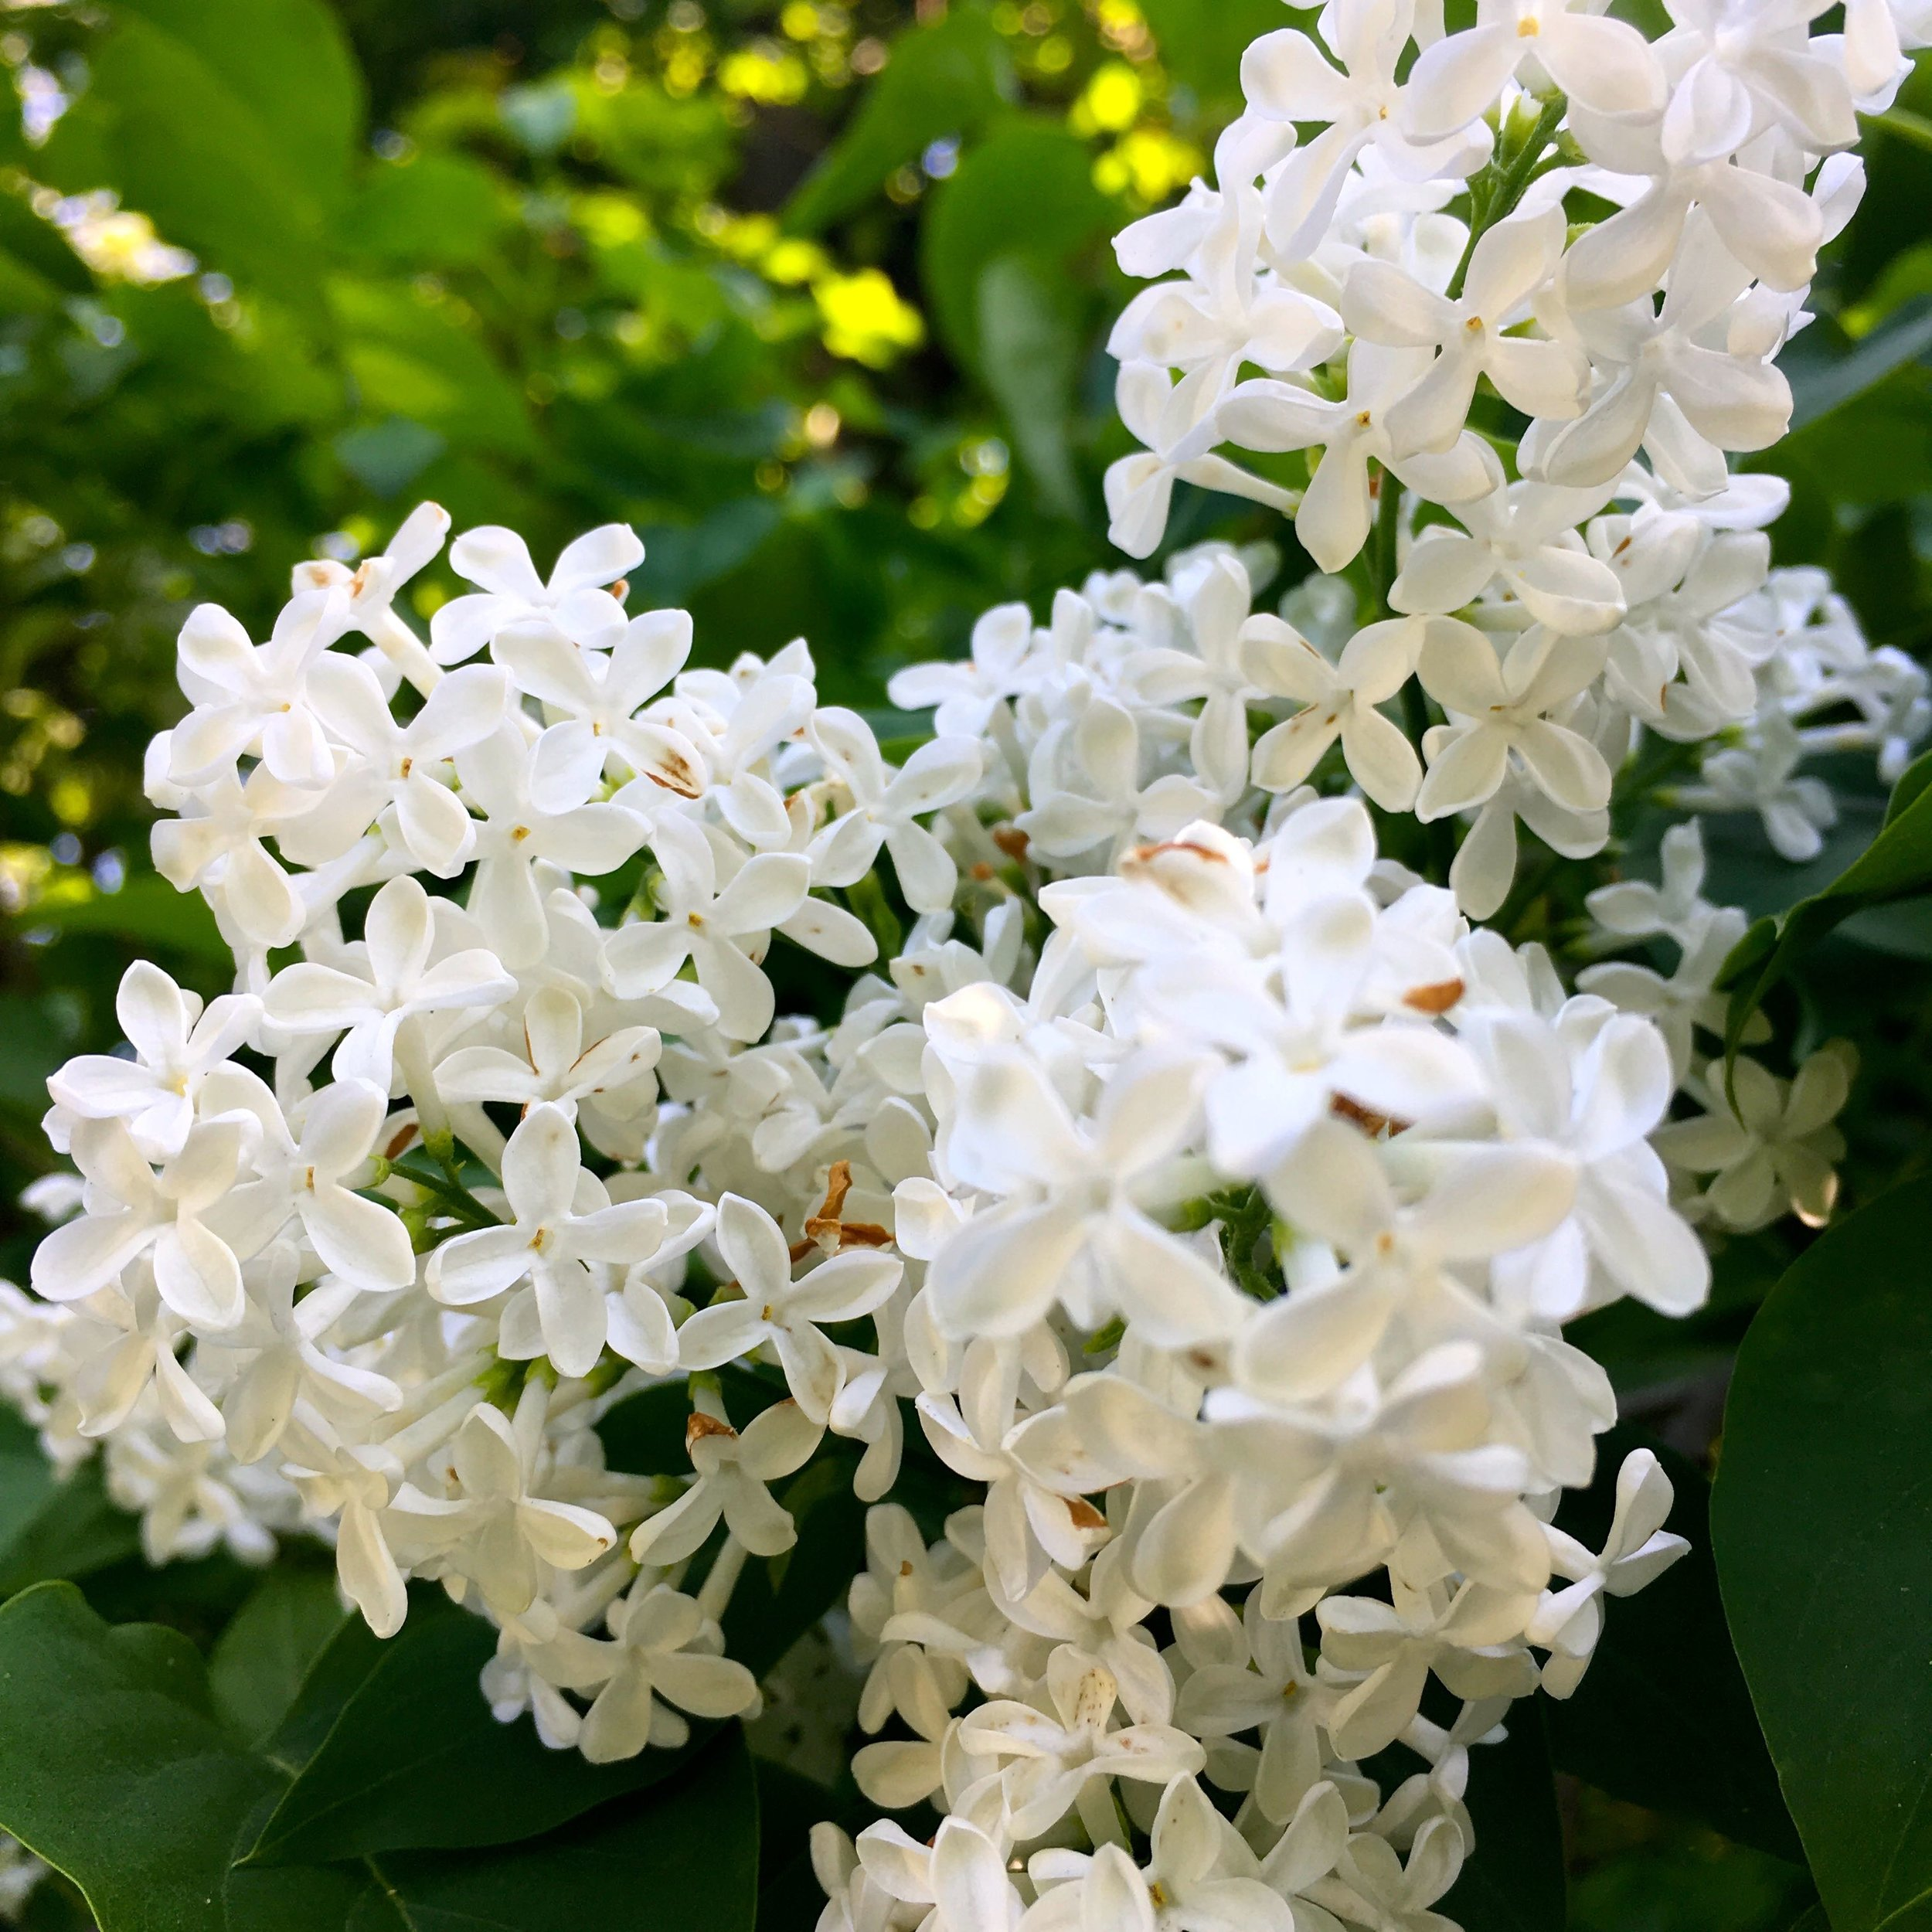 plenty of flowers - and fragrance - from the lilac